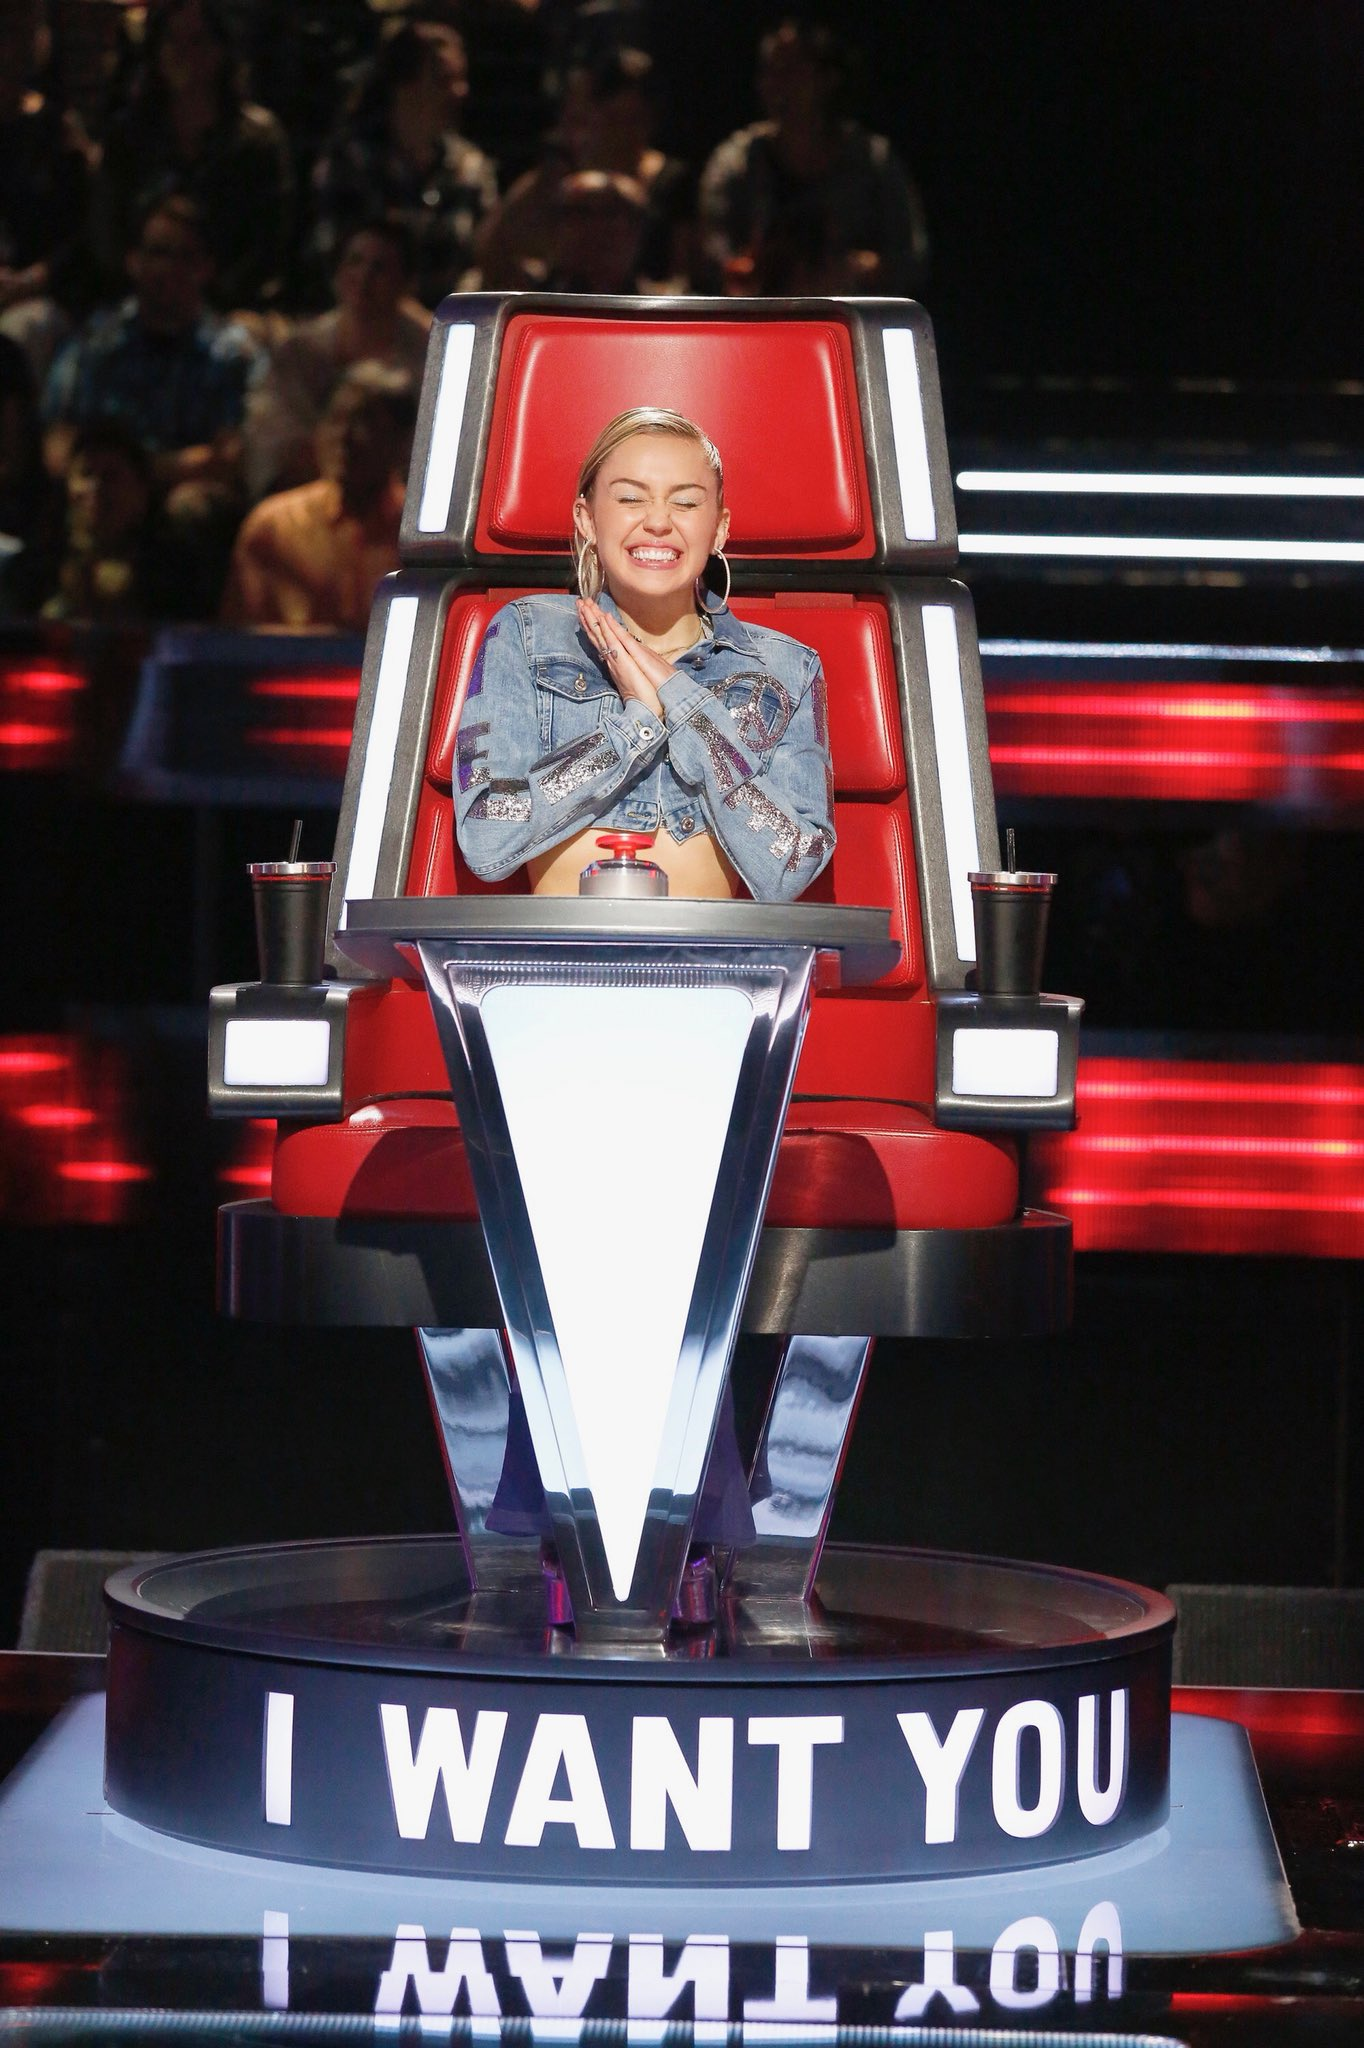 I want YOU to watch @NBCTheVoice premier TONIGHT!!! #TeamMiley all da way! https://t.co/MpFIWIp9iW